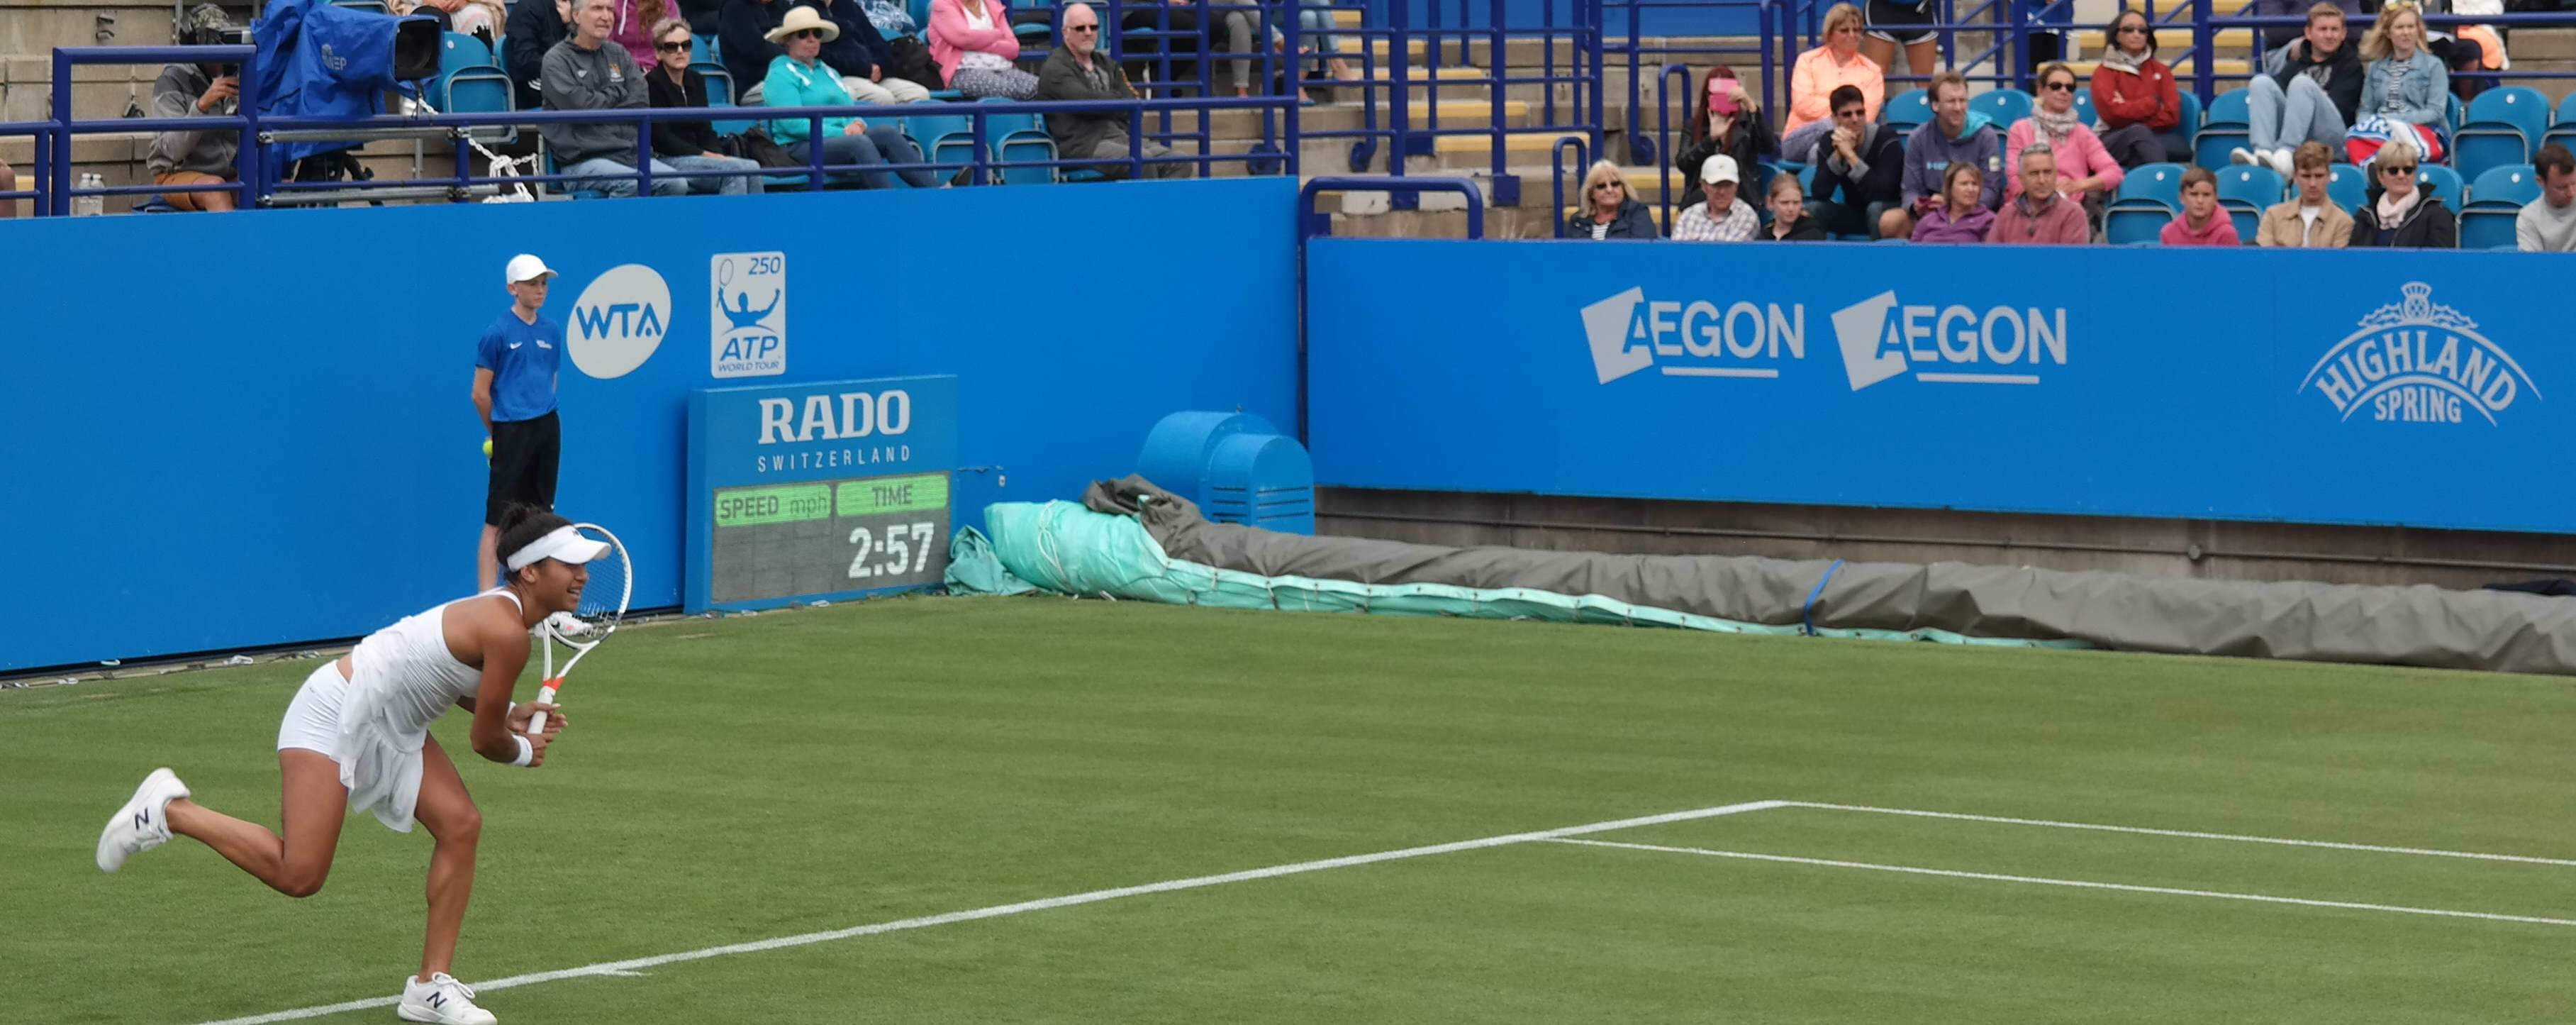 Heather Watson in action in final game of the match vs Tsurenko